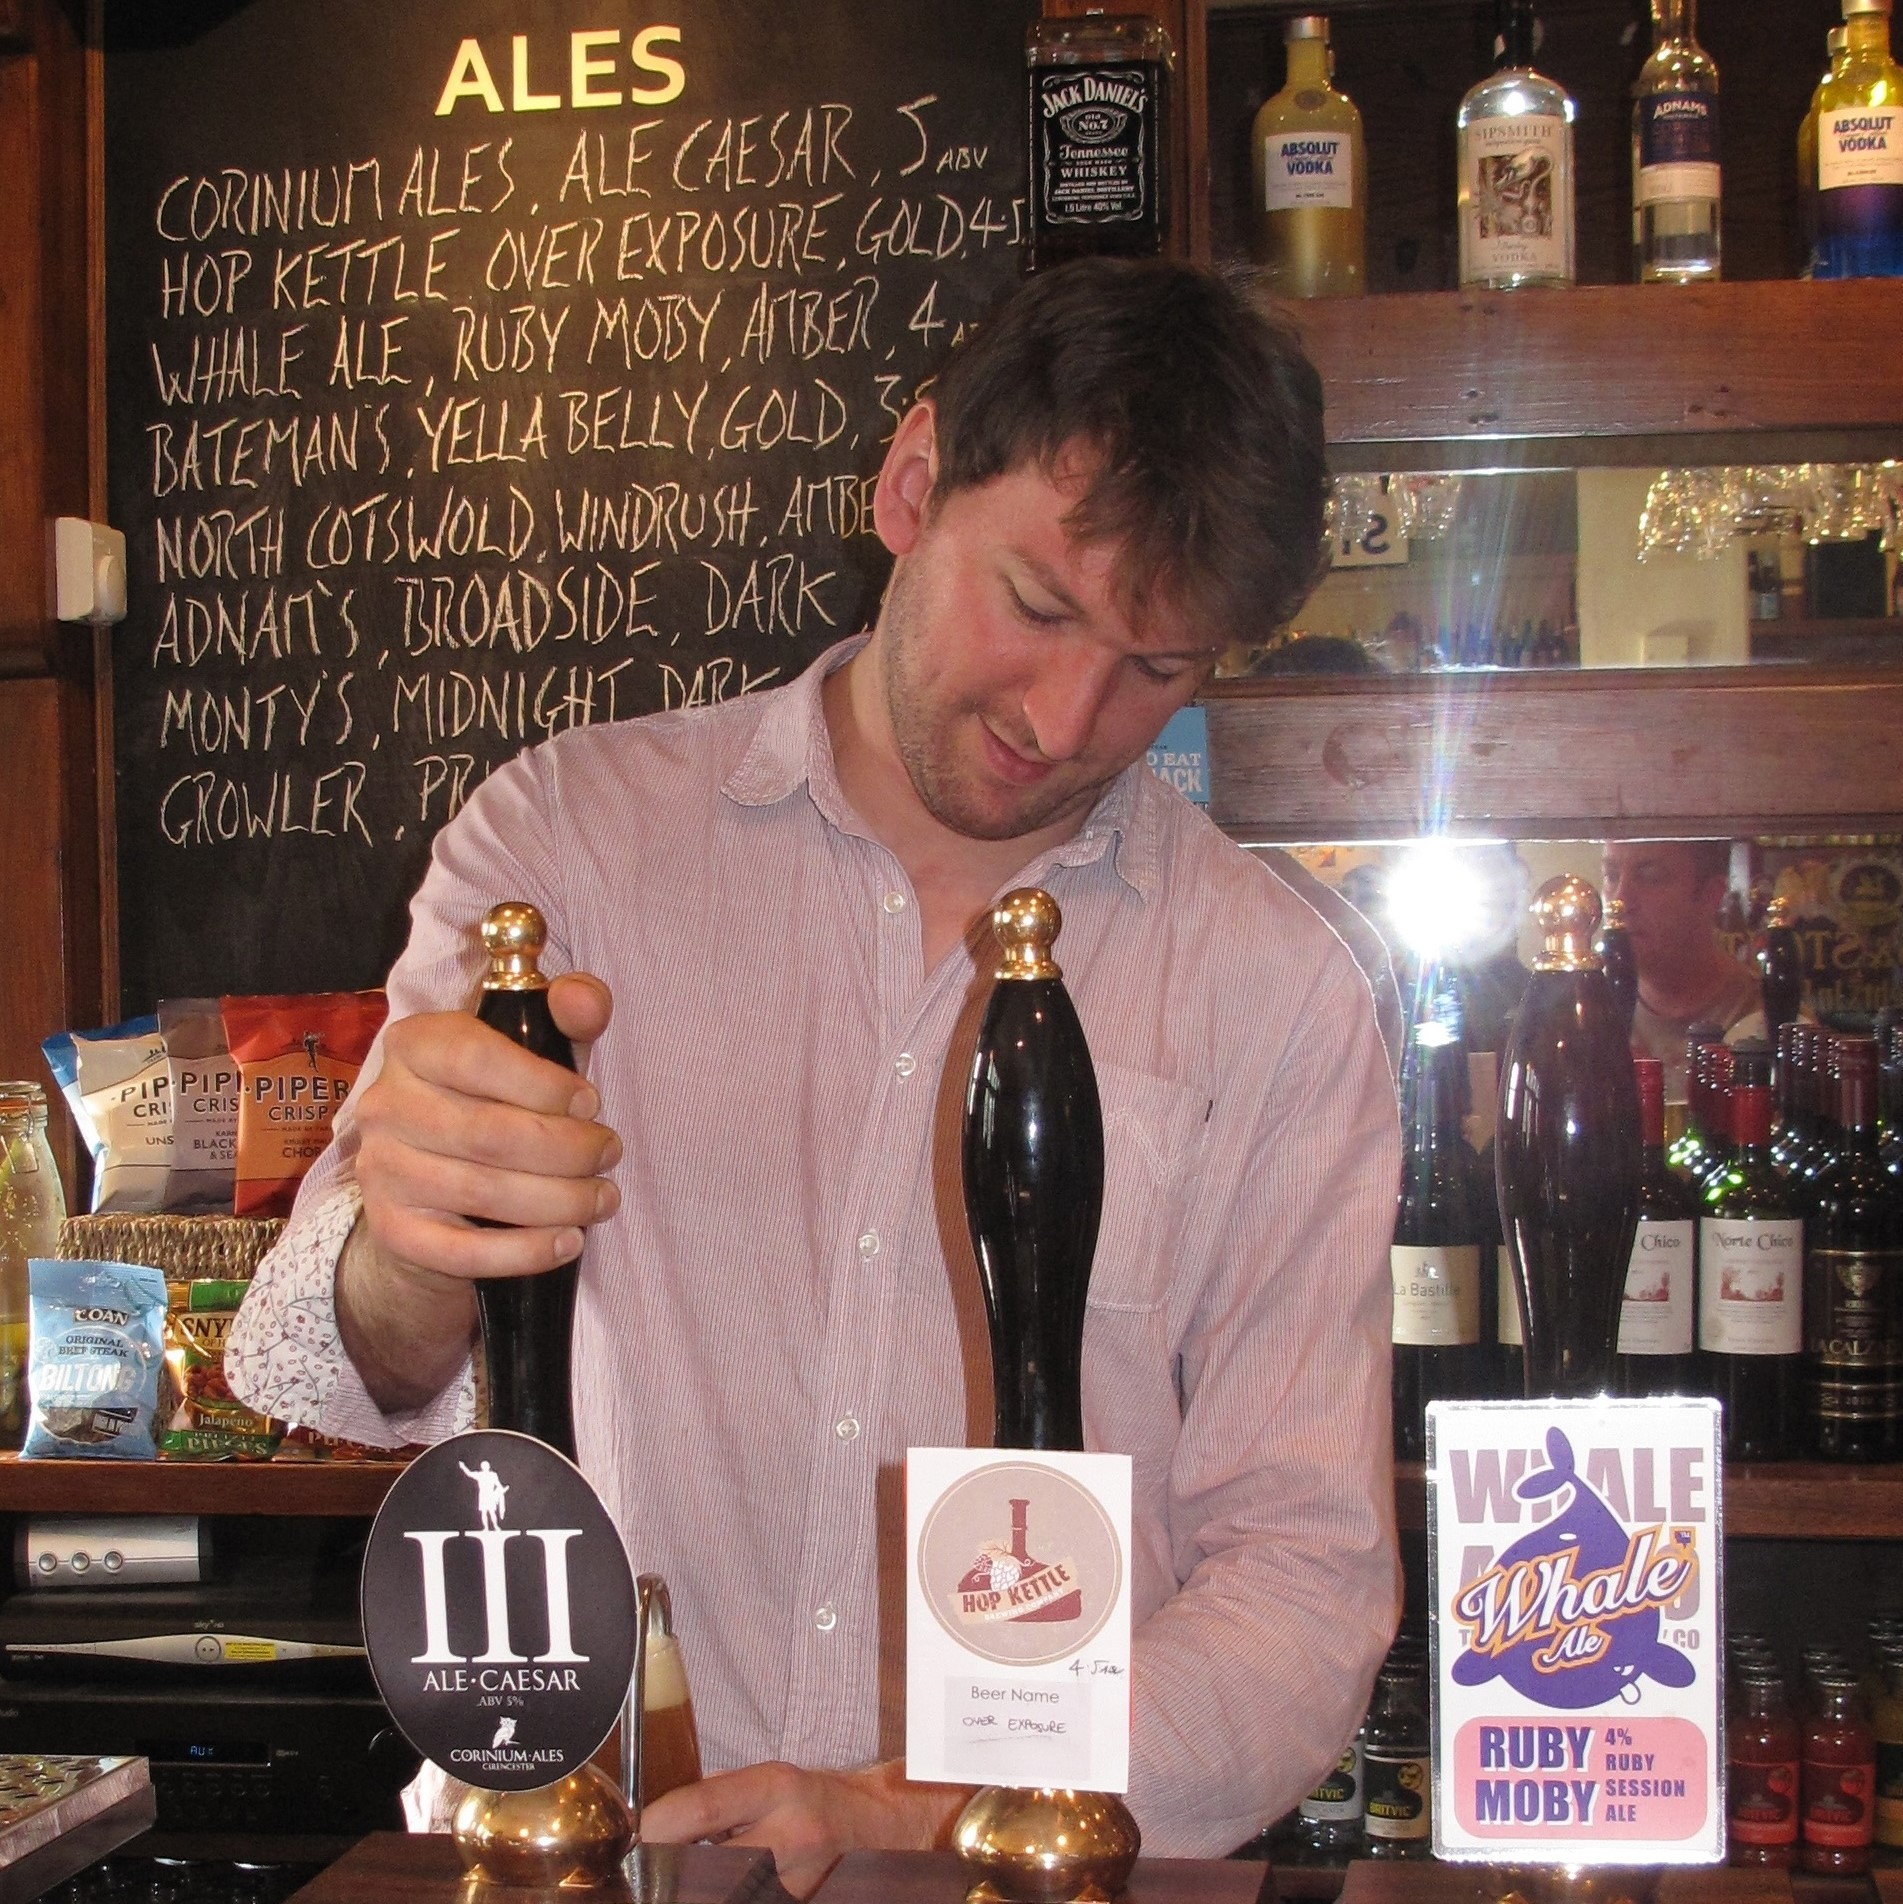 Ali pulls our first pint of Ale Caesar IPA in 2013 at the Marlborough Arms, Cirencester